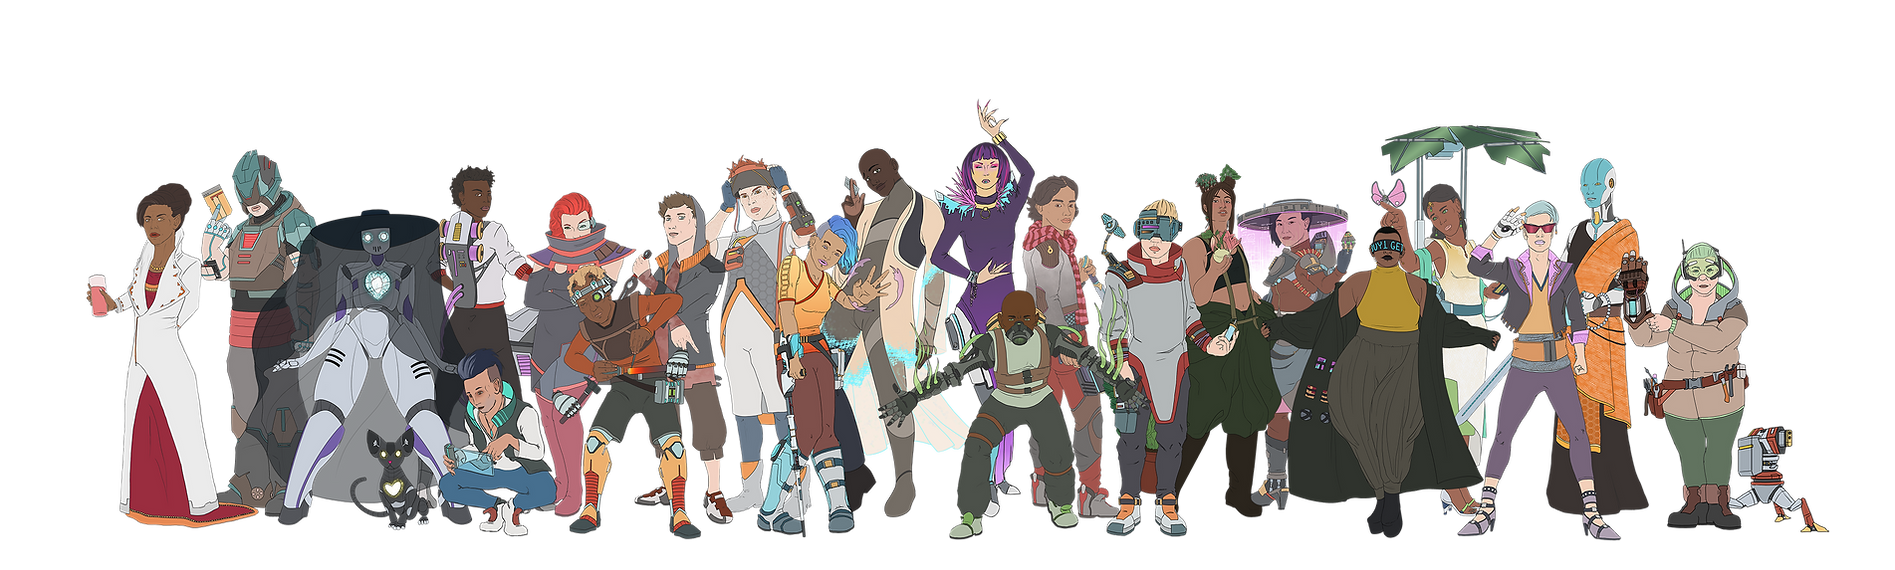 A lineup of 21 cyberpunk characters.